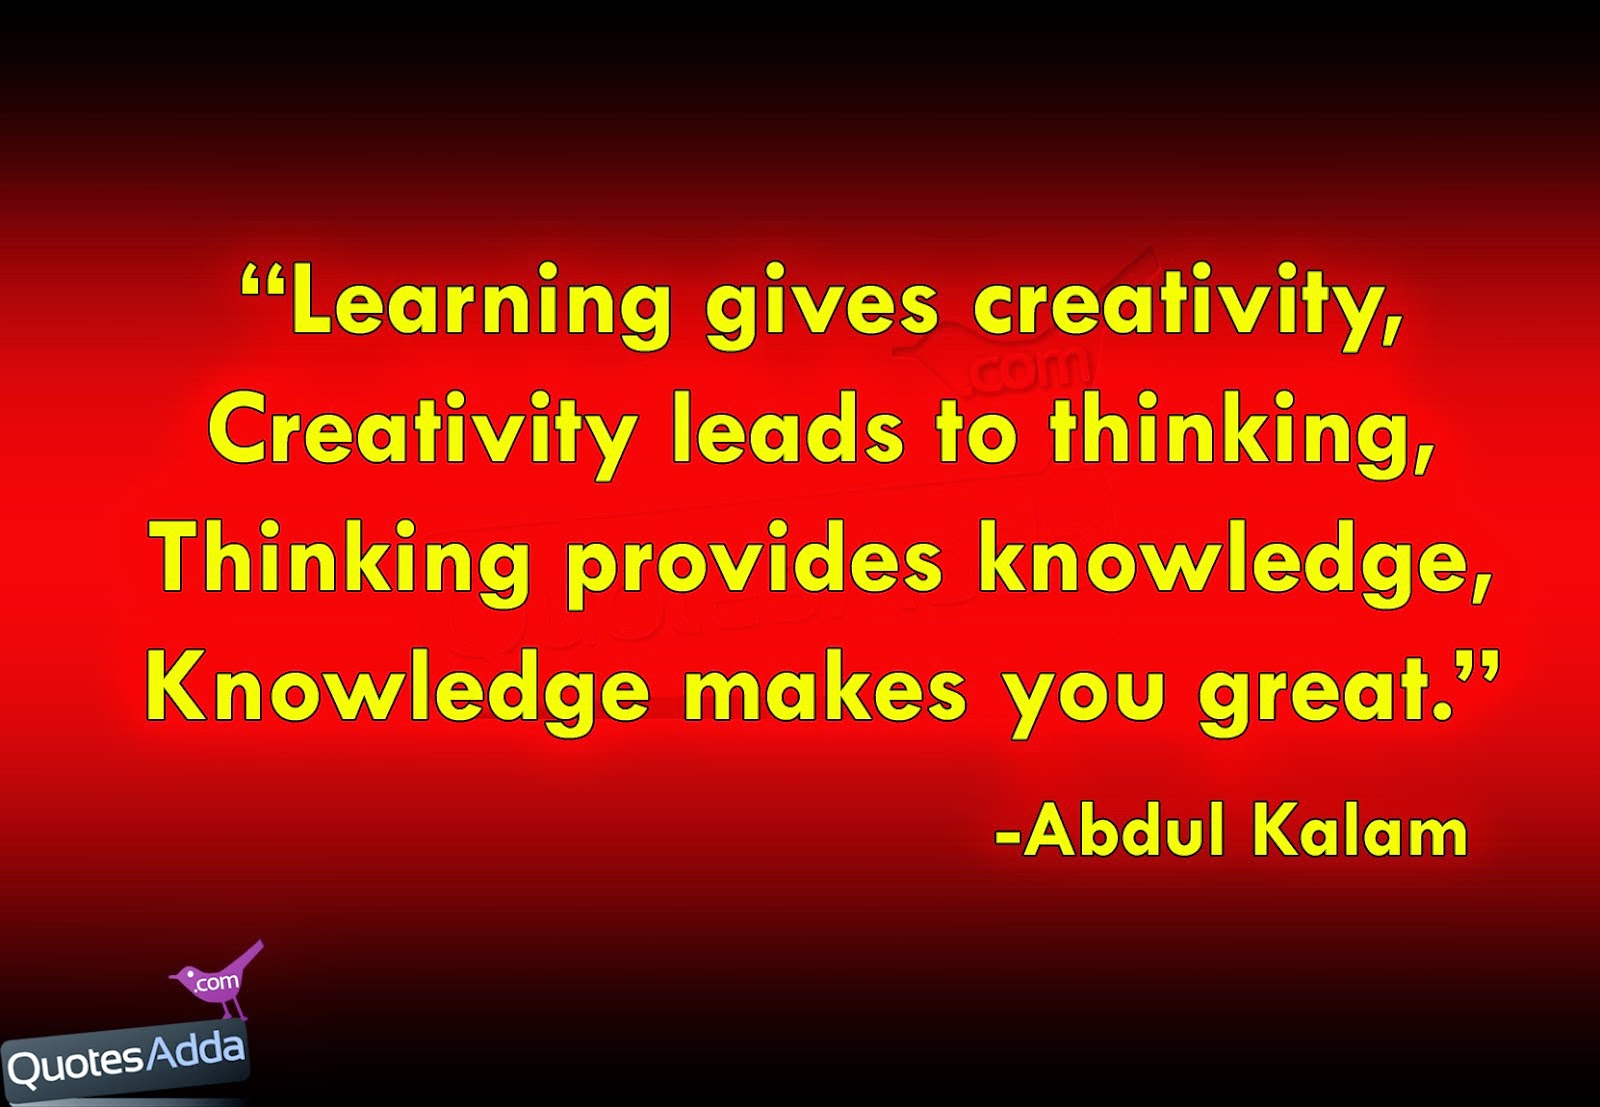 Quote Related To Life Dra.p.jabdul Kalam Dra.p.jabdul Kalam's Quotes